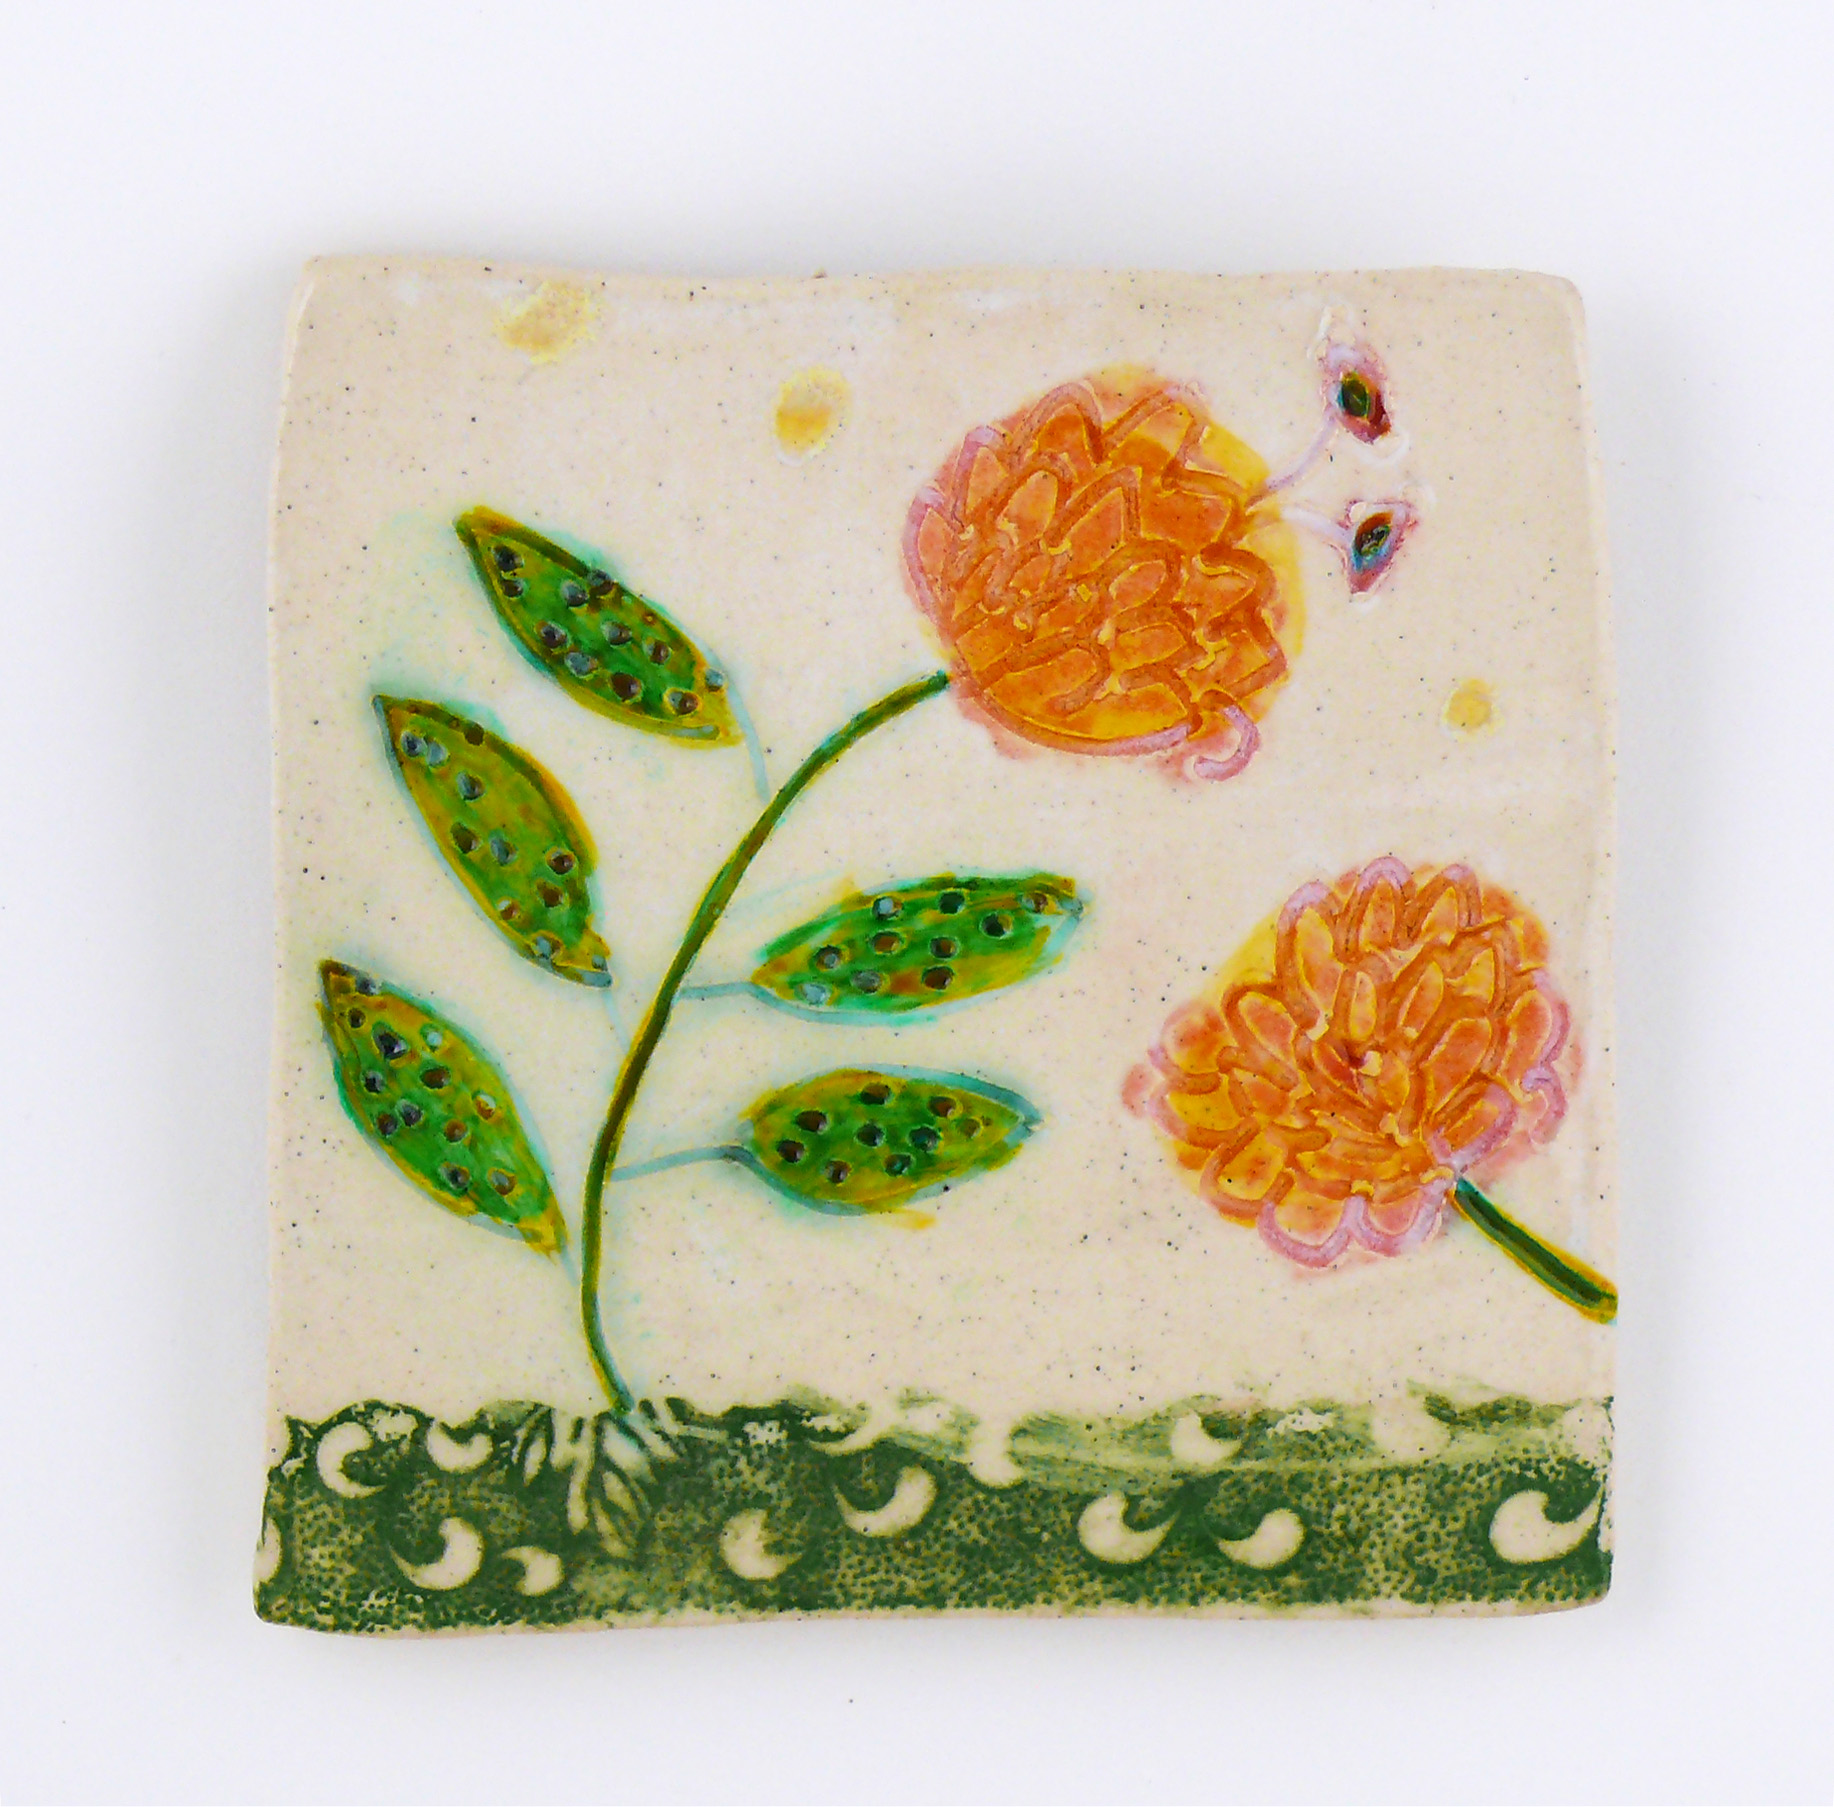 Flowers. porcelain wall tile. Cathy Kiffney. 5x5""